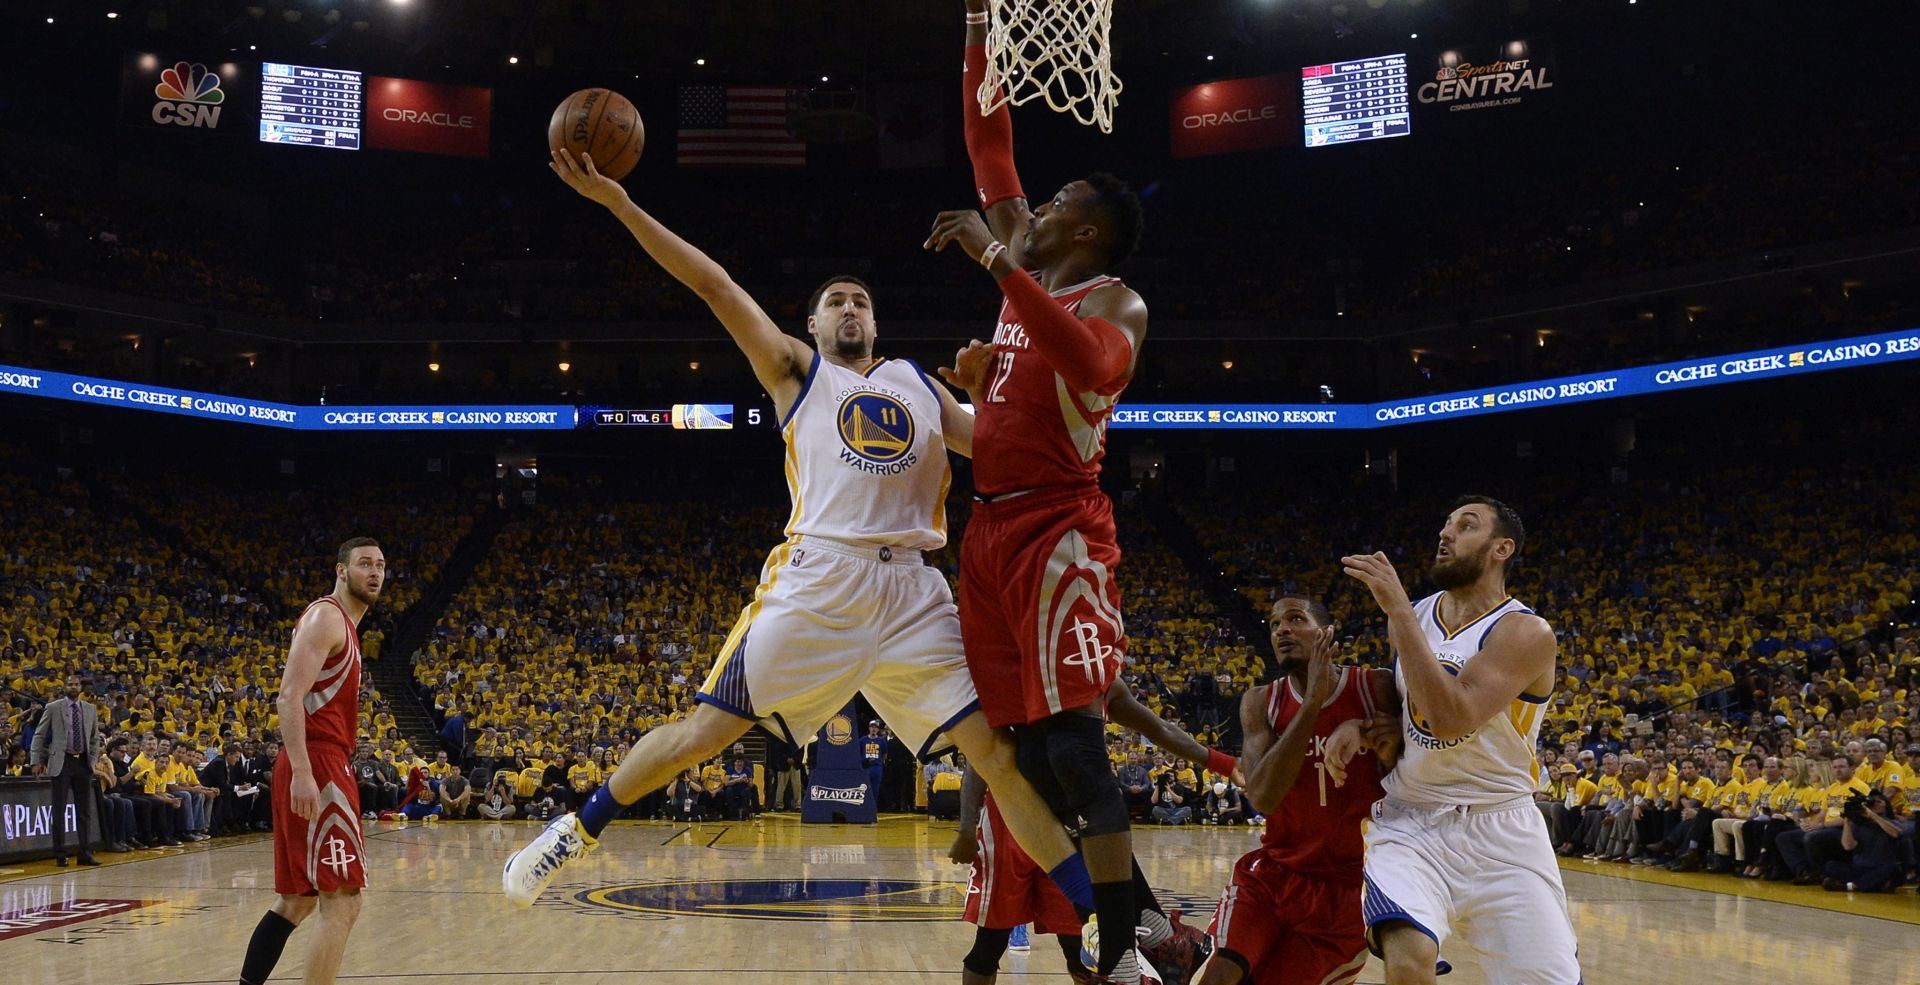 NBA: Golden State slavio i bez Curryja